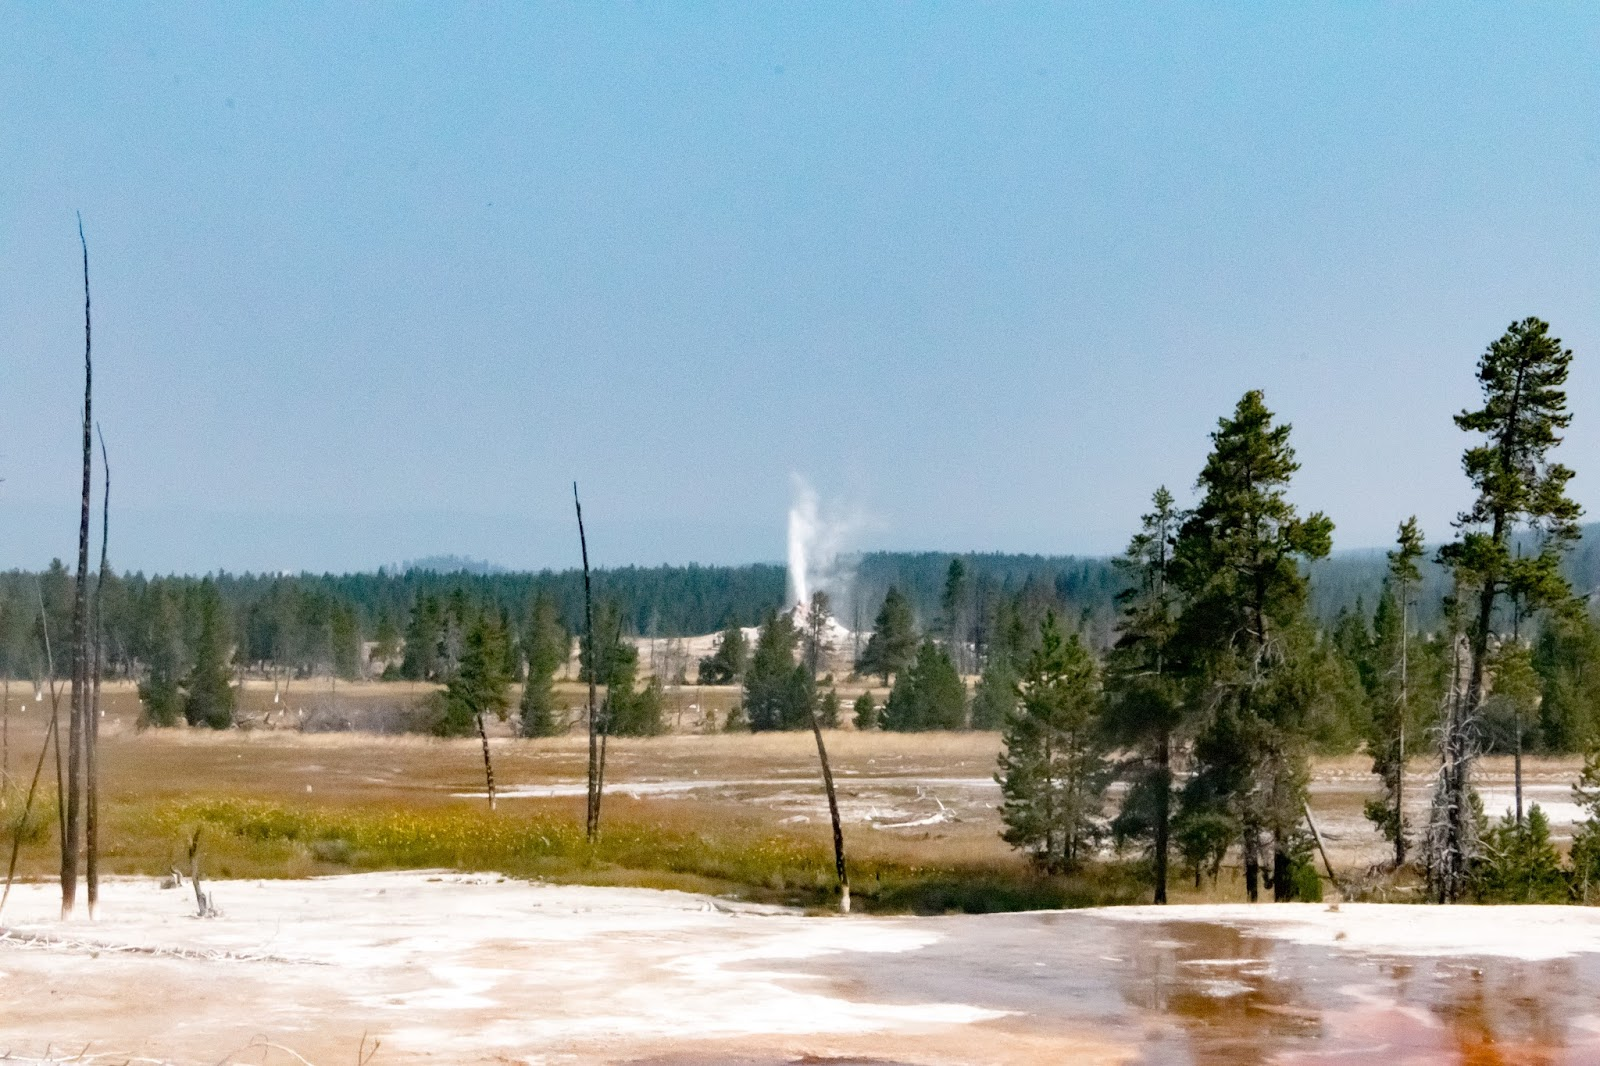 great fountain geyser is the most famous of the geysers in this area it is one of the grand geysers that is predictable it erupts every 8 12 hours and the